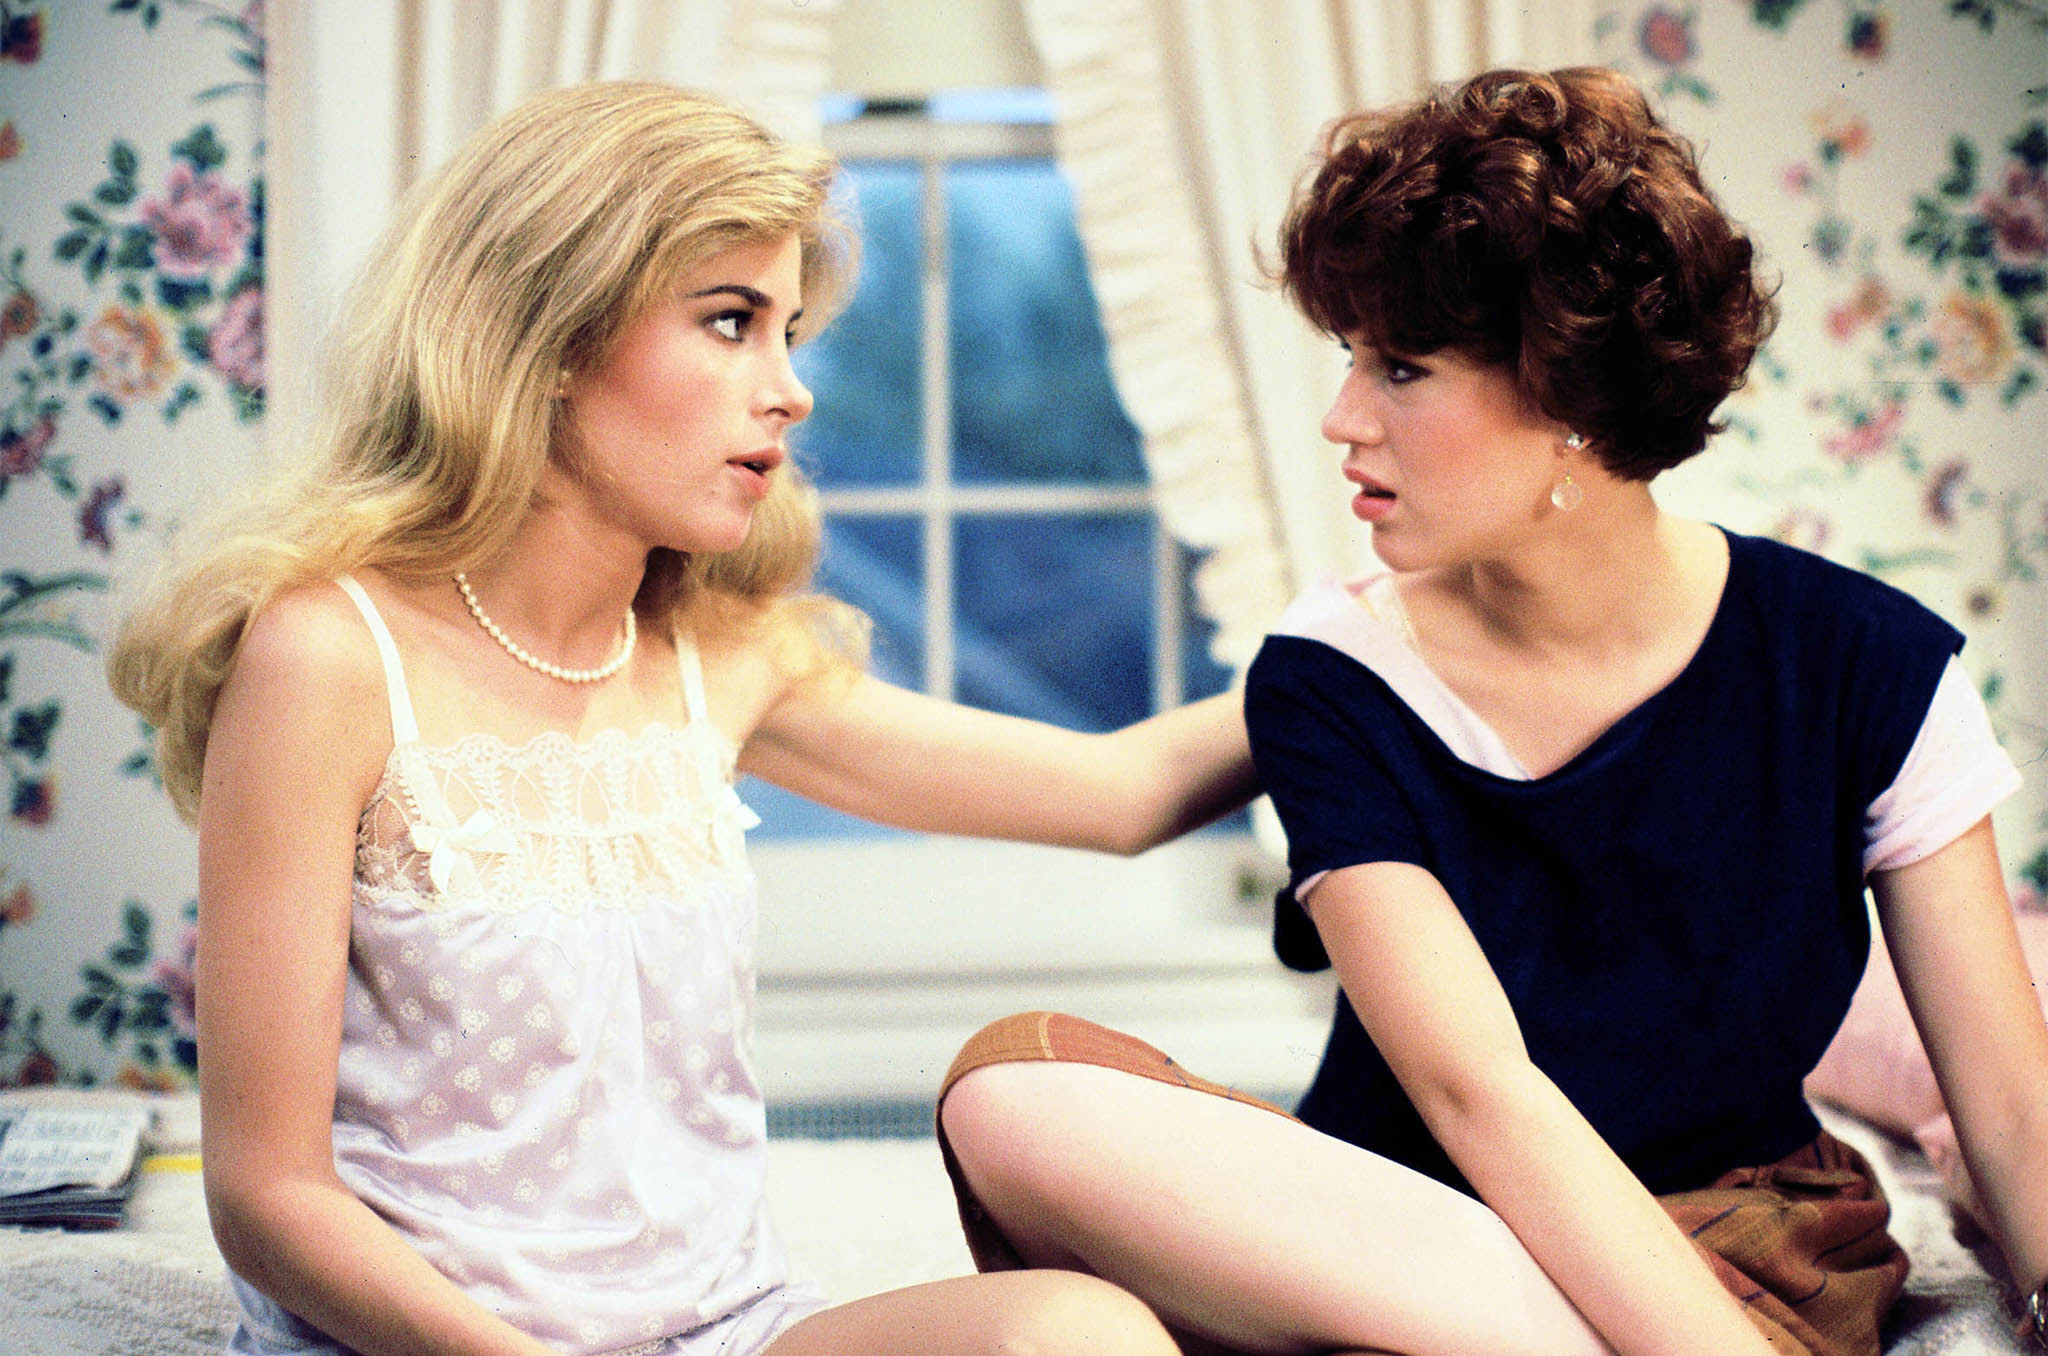 100 best teen movies, from Carrie to Clueless